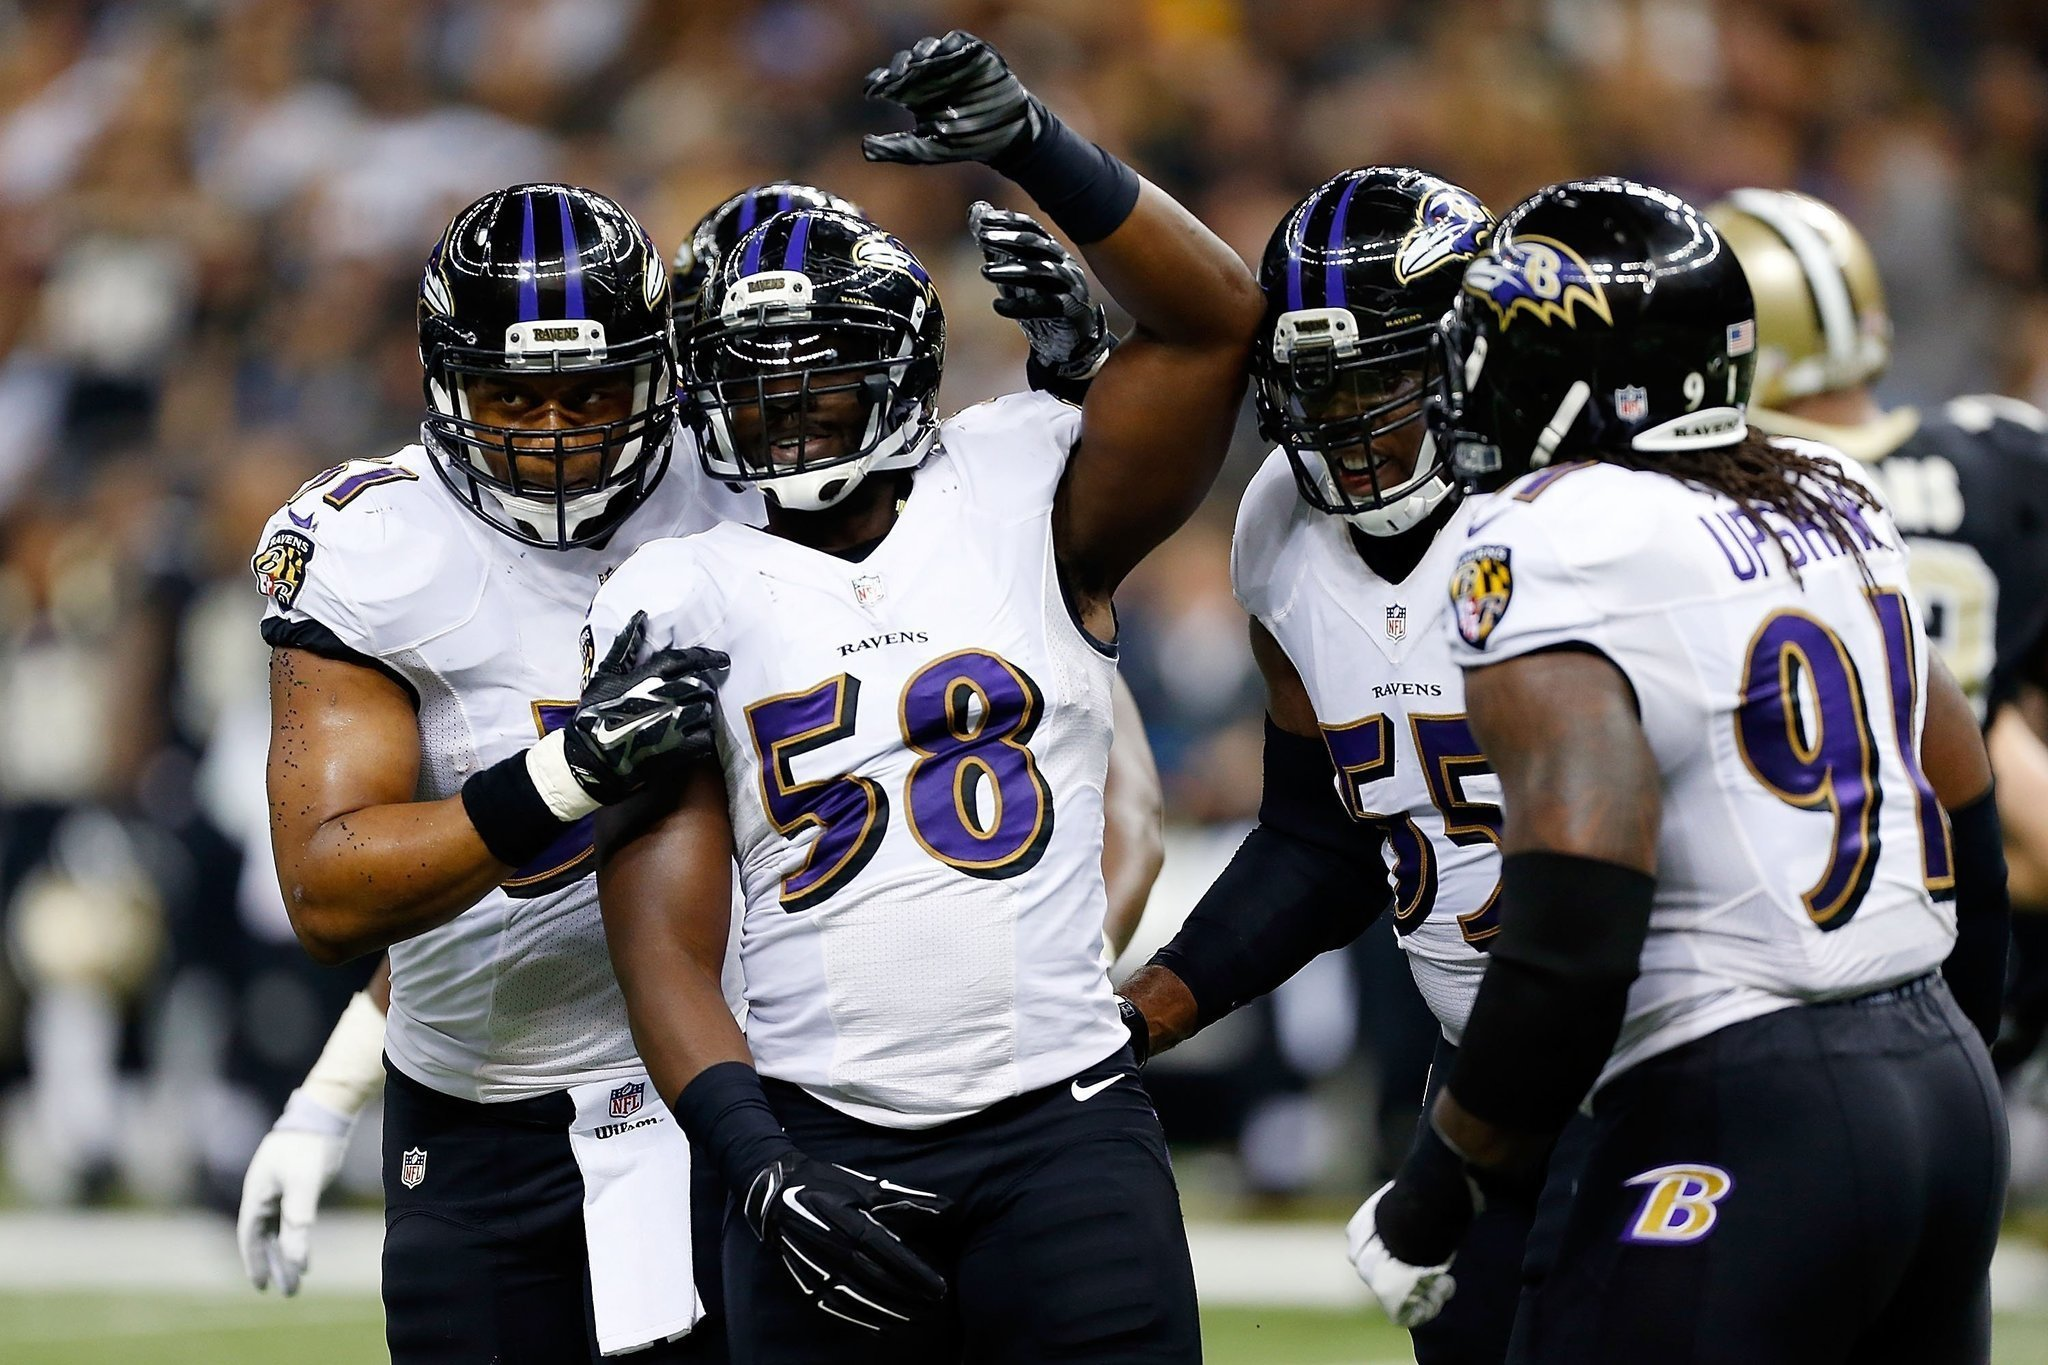 Bal-elvis-dumervil-backs-up-terrell-suggs-announcement-that-linebacker-will-play-for-ravens-on-sunday-20160929